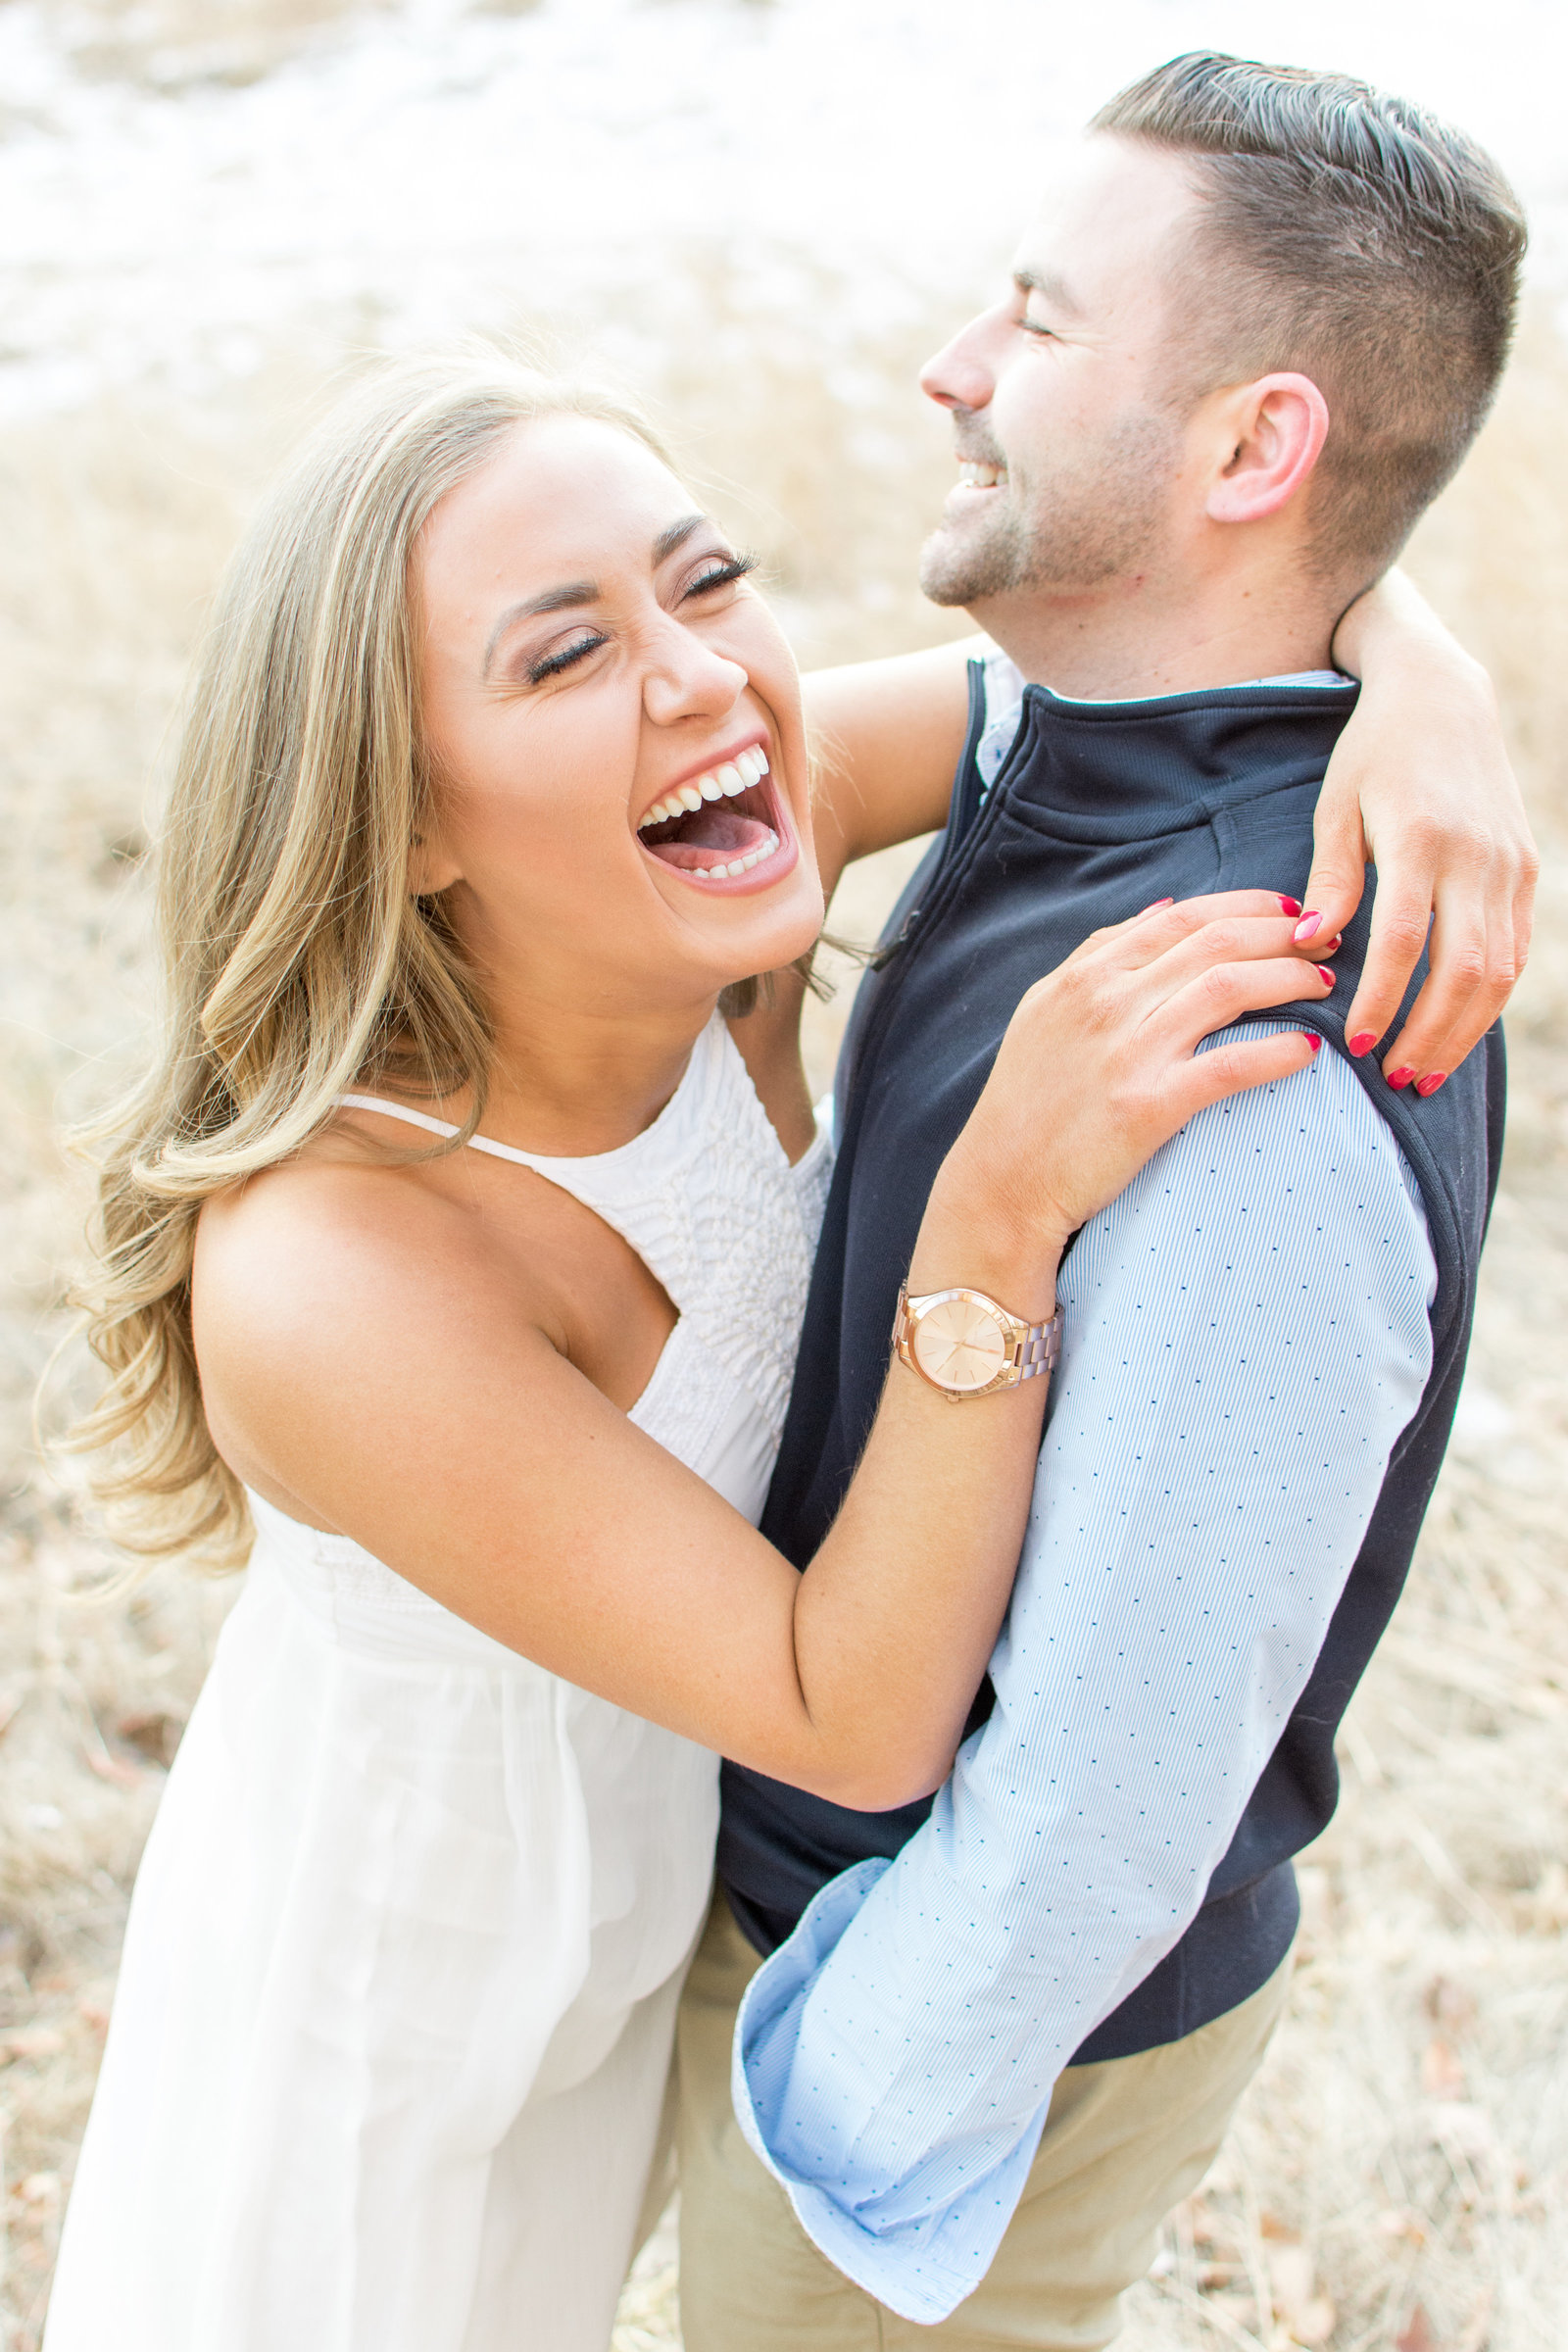 Adorable Laughing Couple